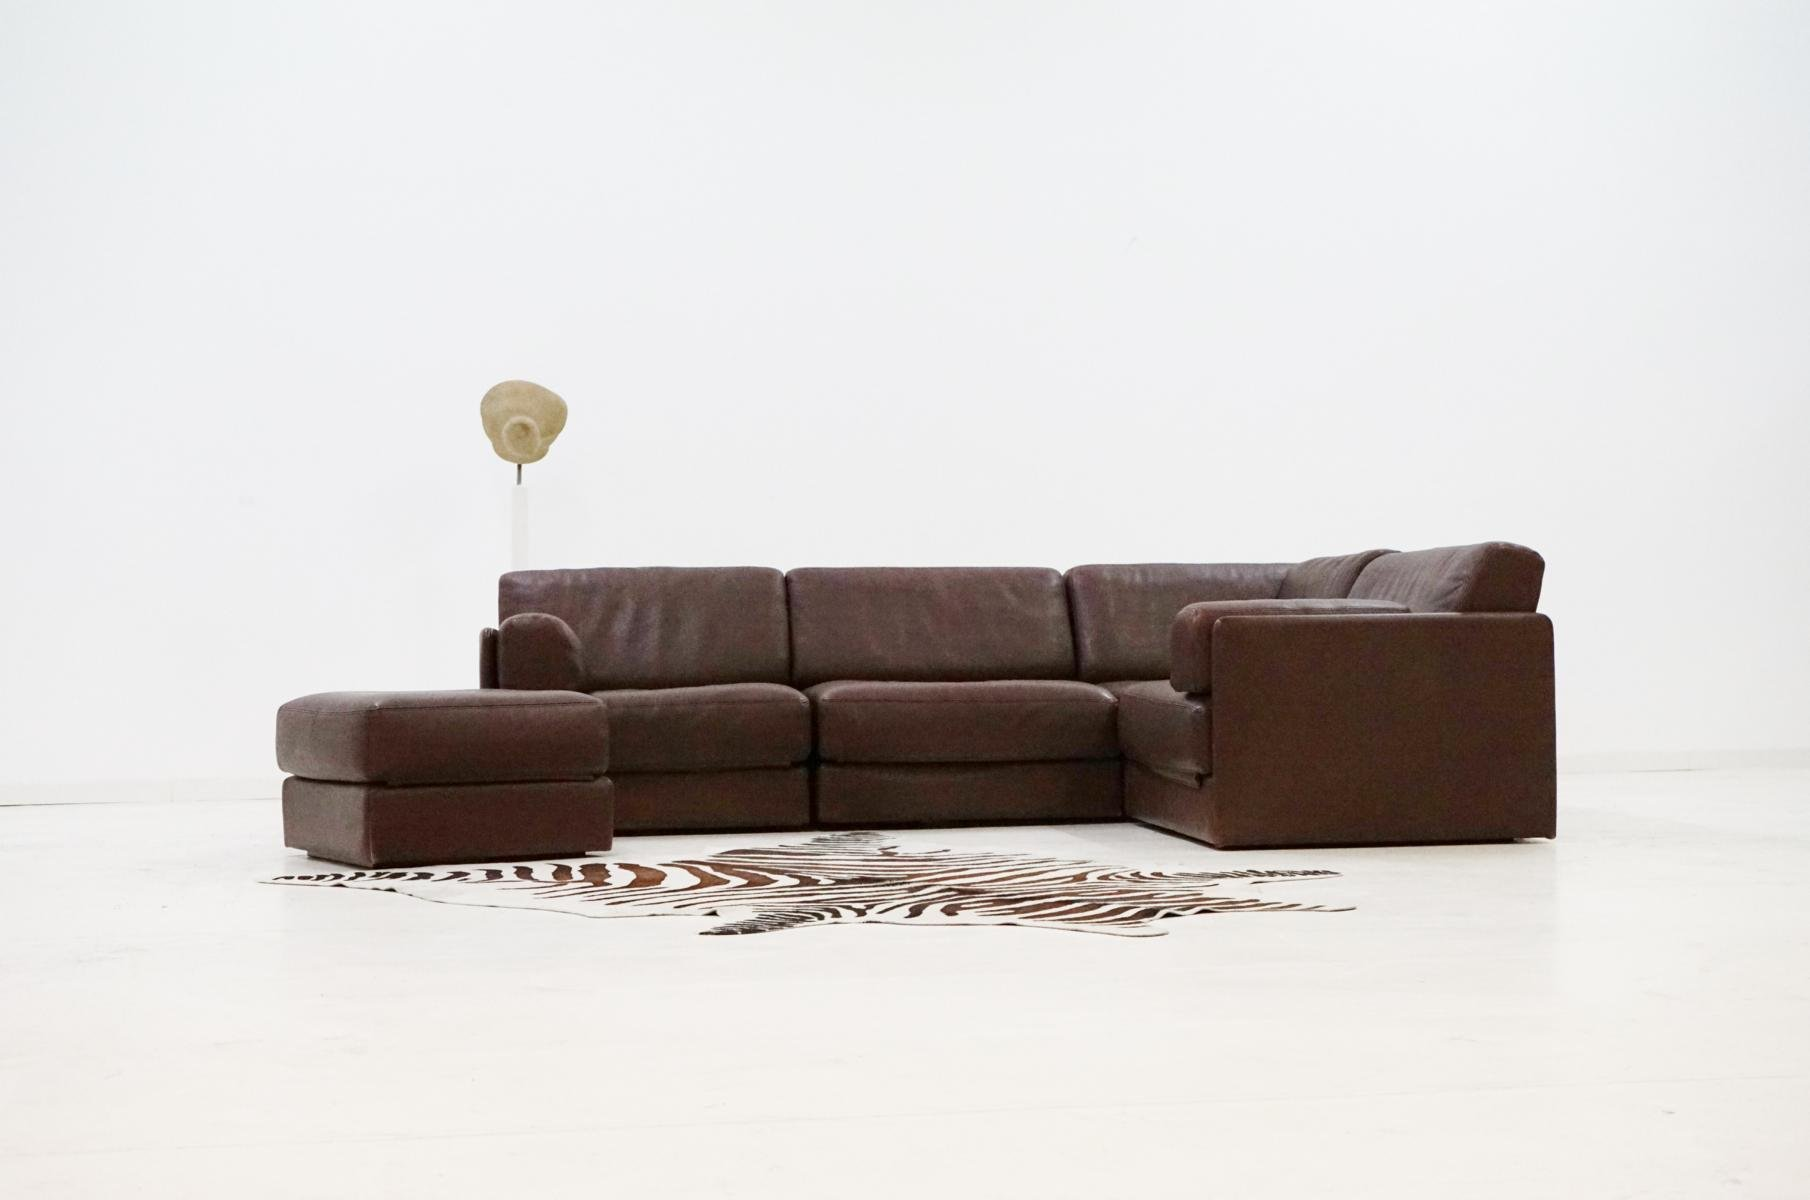 Vintage Ds 76 Leather Modular Sofa From De Sede For Sale At Pamono